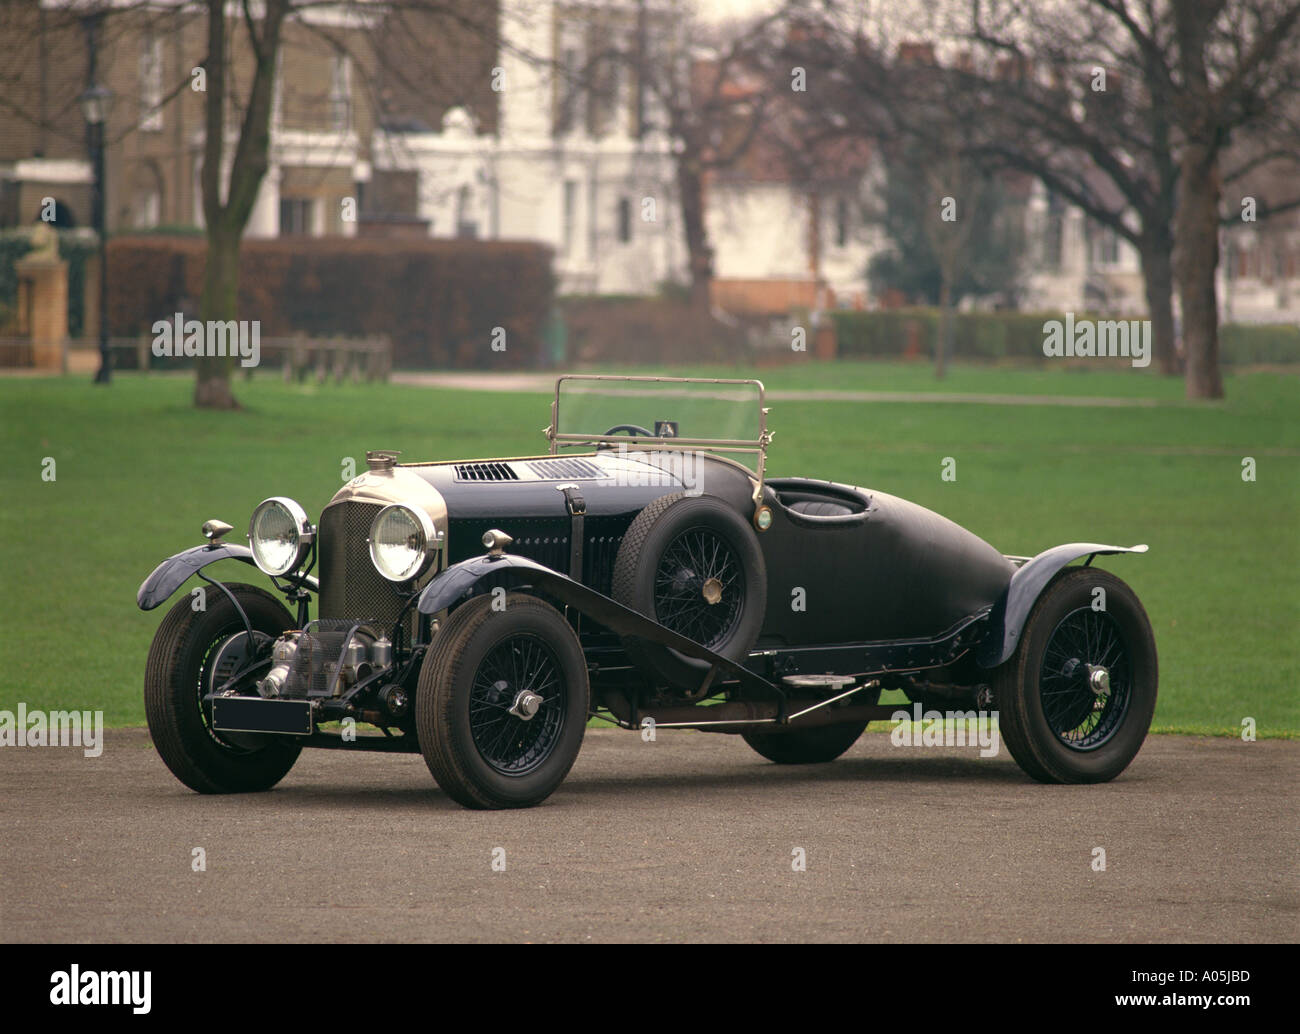 1931 Bentley 4 5 Litre Supercharged Blower Racing 2 Seater No 5 Birkin Team  Car Country Of Origin United Kingdom